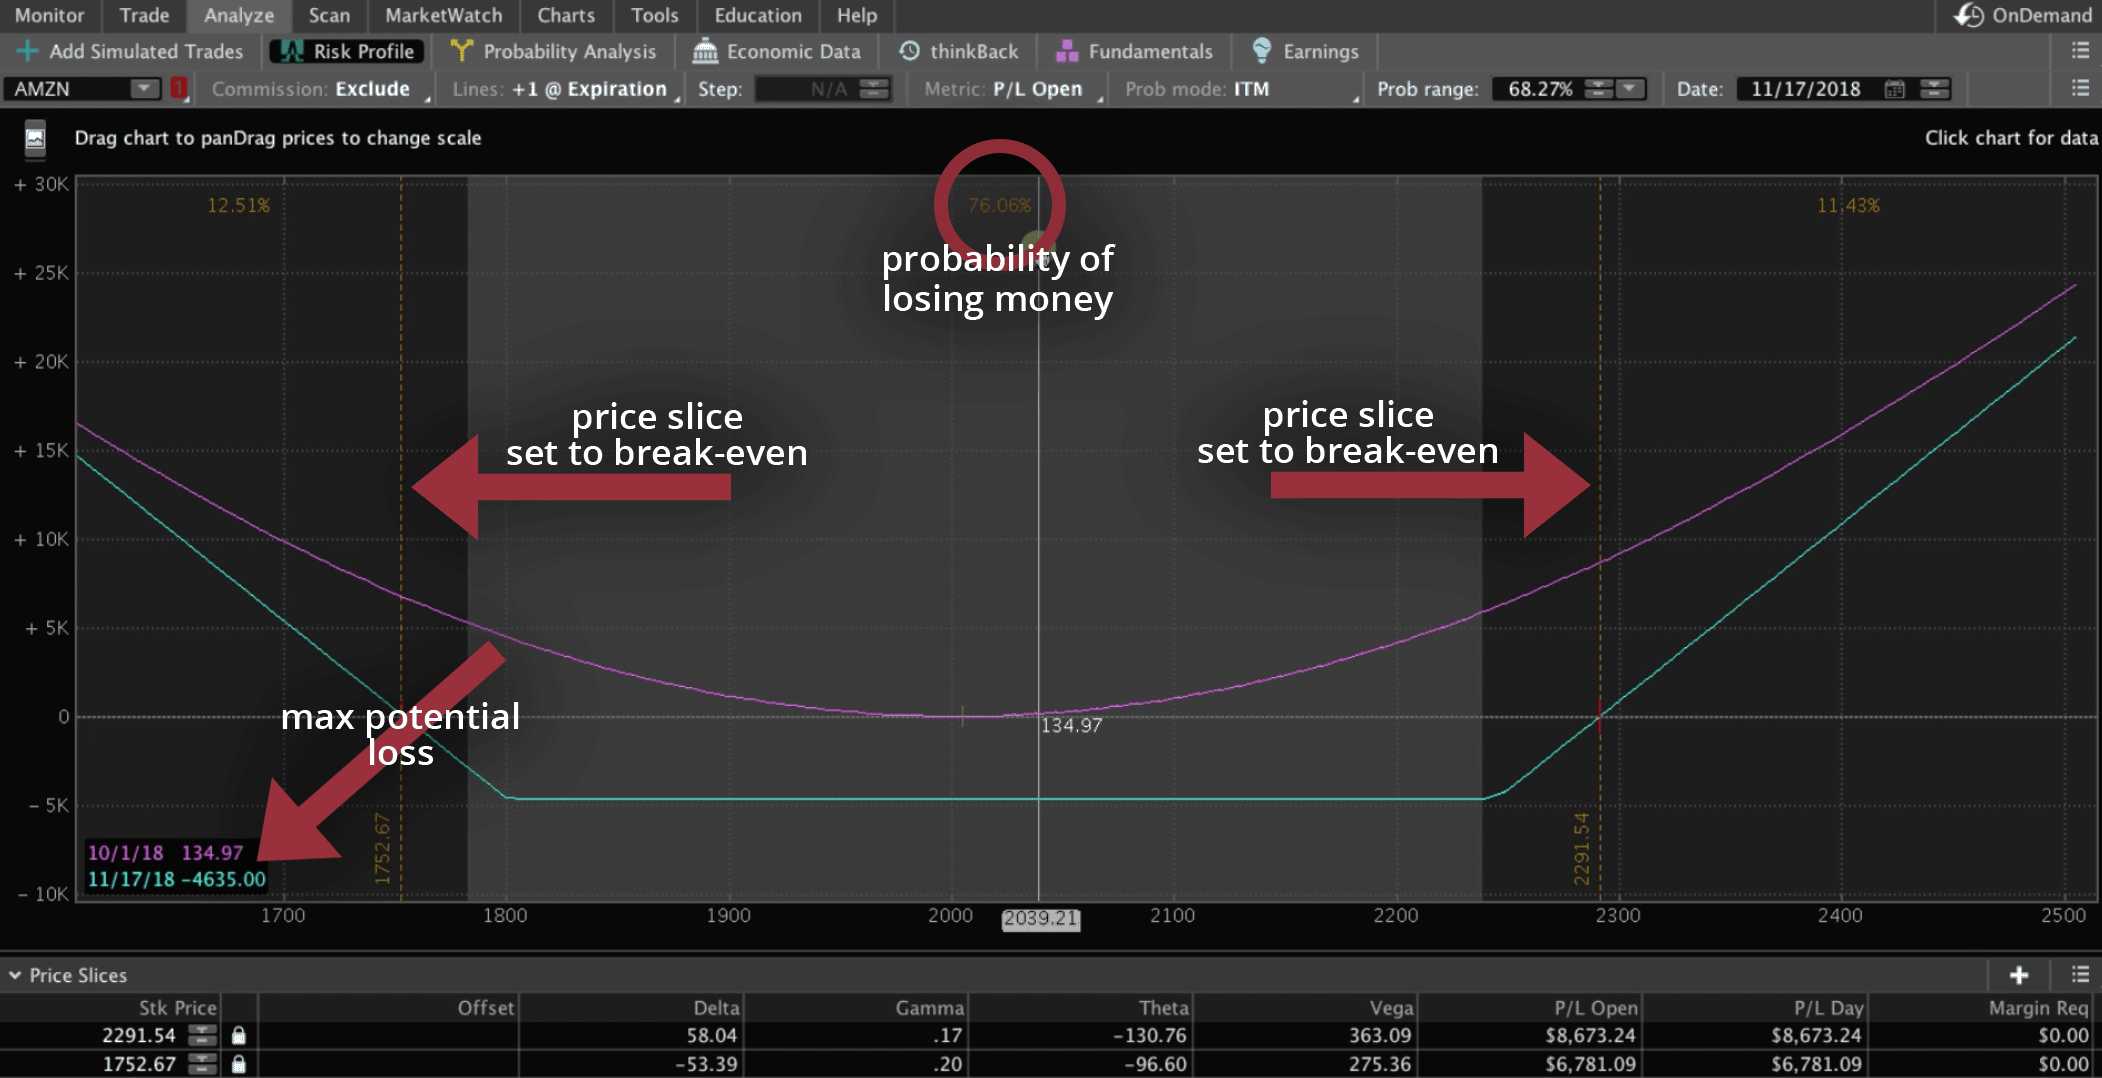 Long Strangle graph in Analyze tab explained